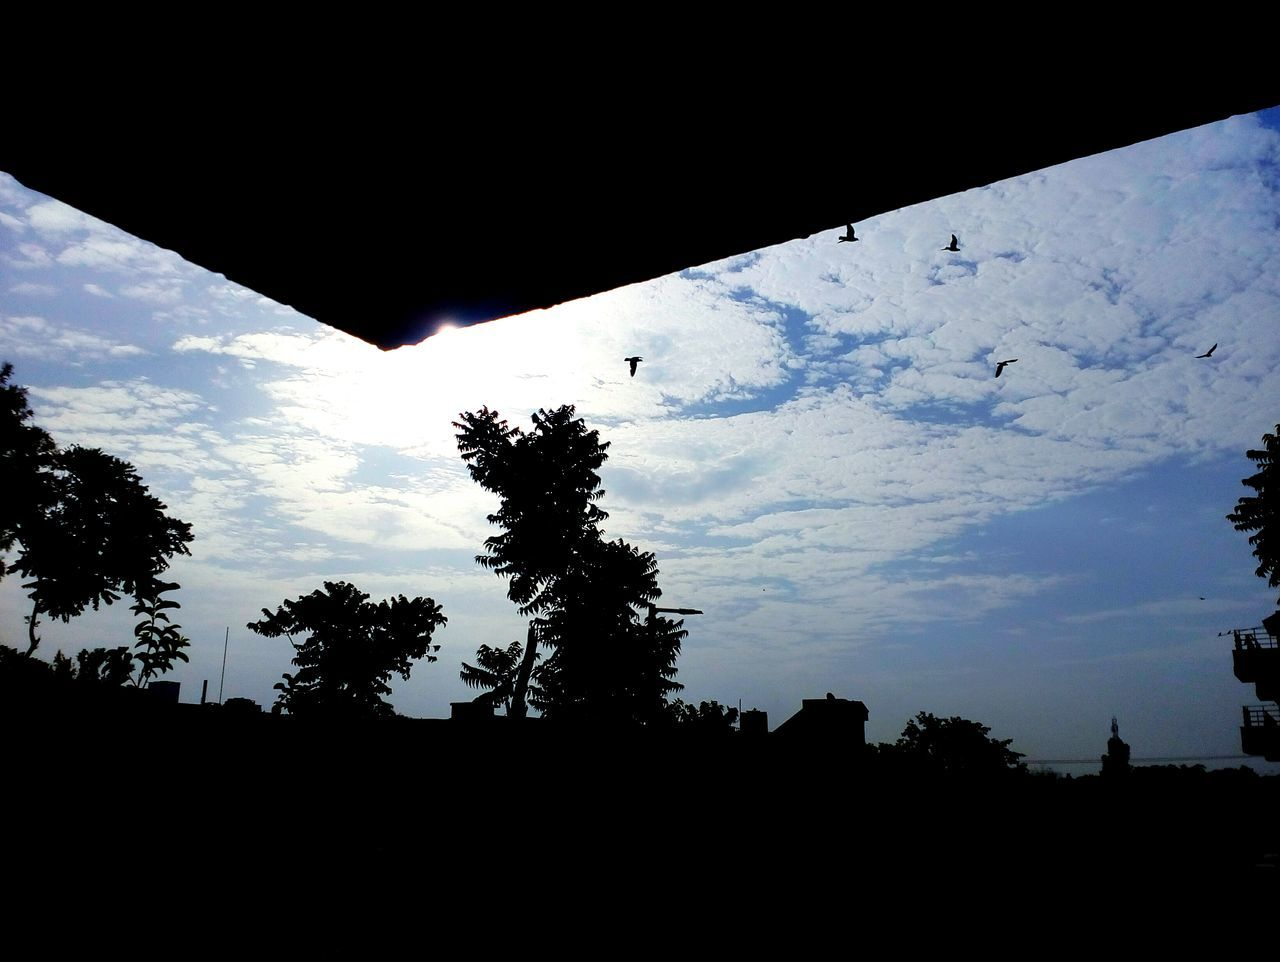 silhouette, tree, nature, sky, low angle view, beauty in nature, no people, cloud - sky, outdoors, tranquility, scenics, day, bird